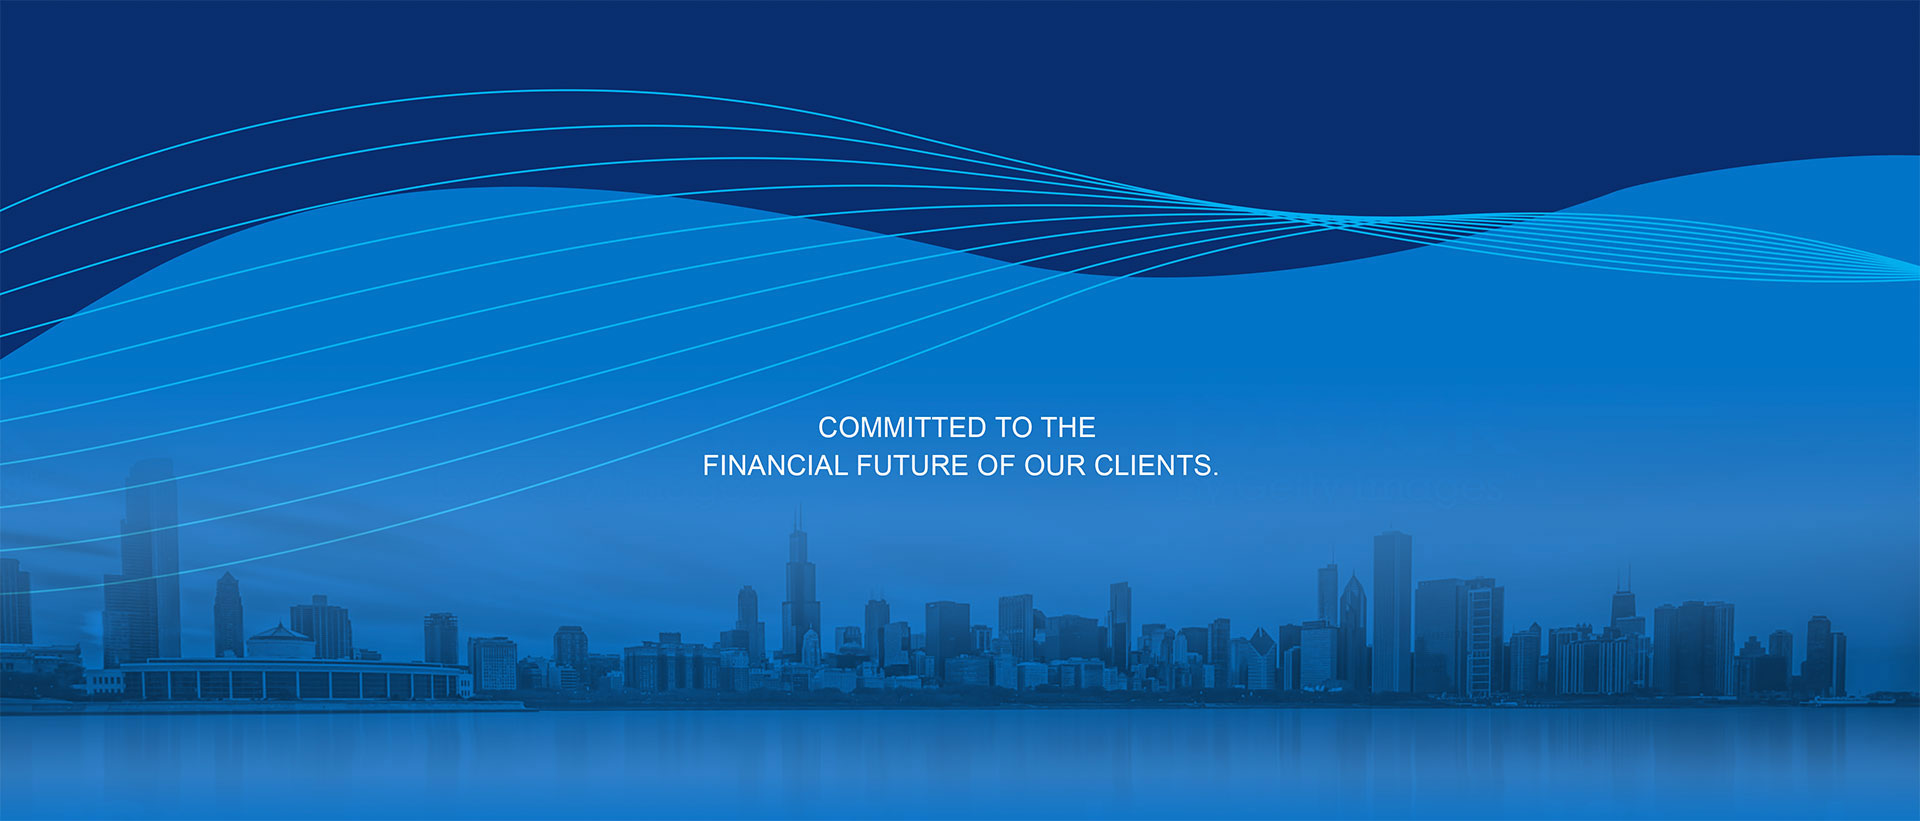 Commited to the financial future of our clients.